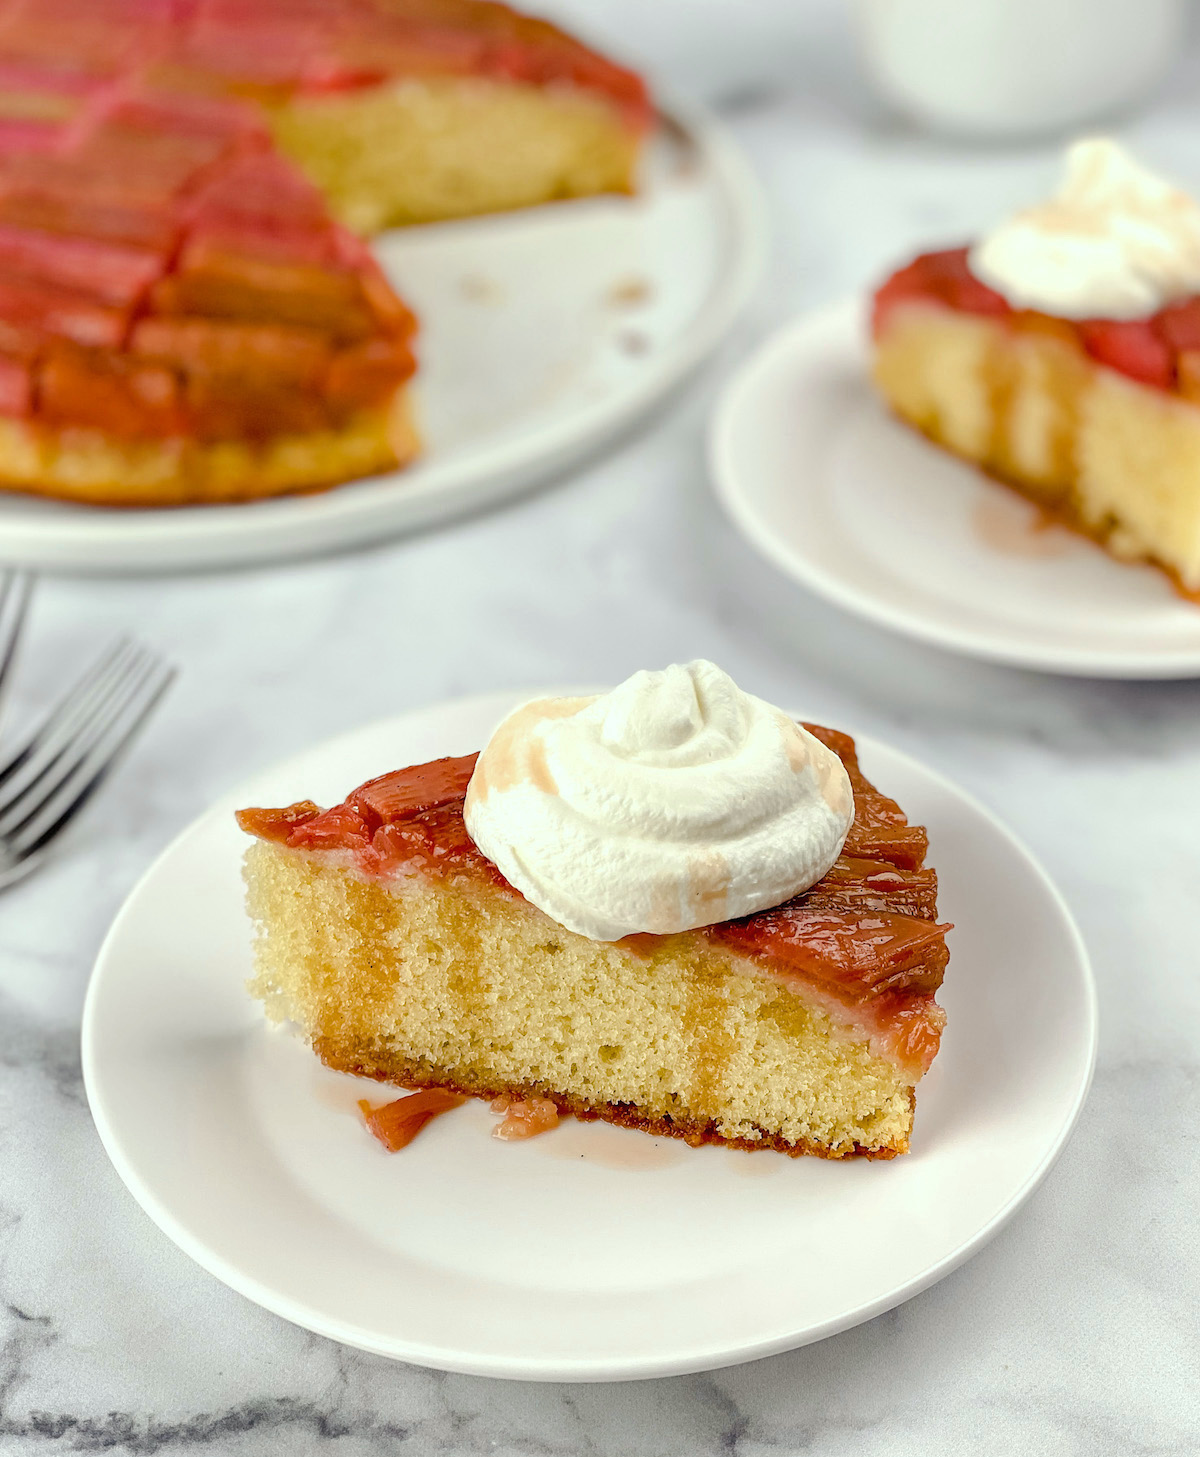 perfect slice of rhubarb cake with sauce and cream